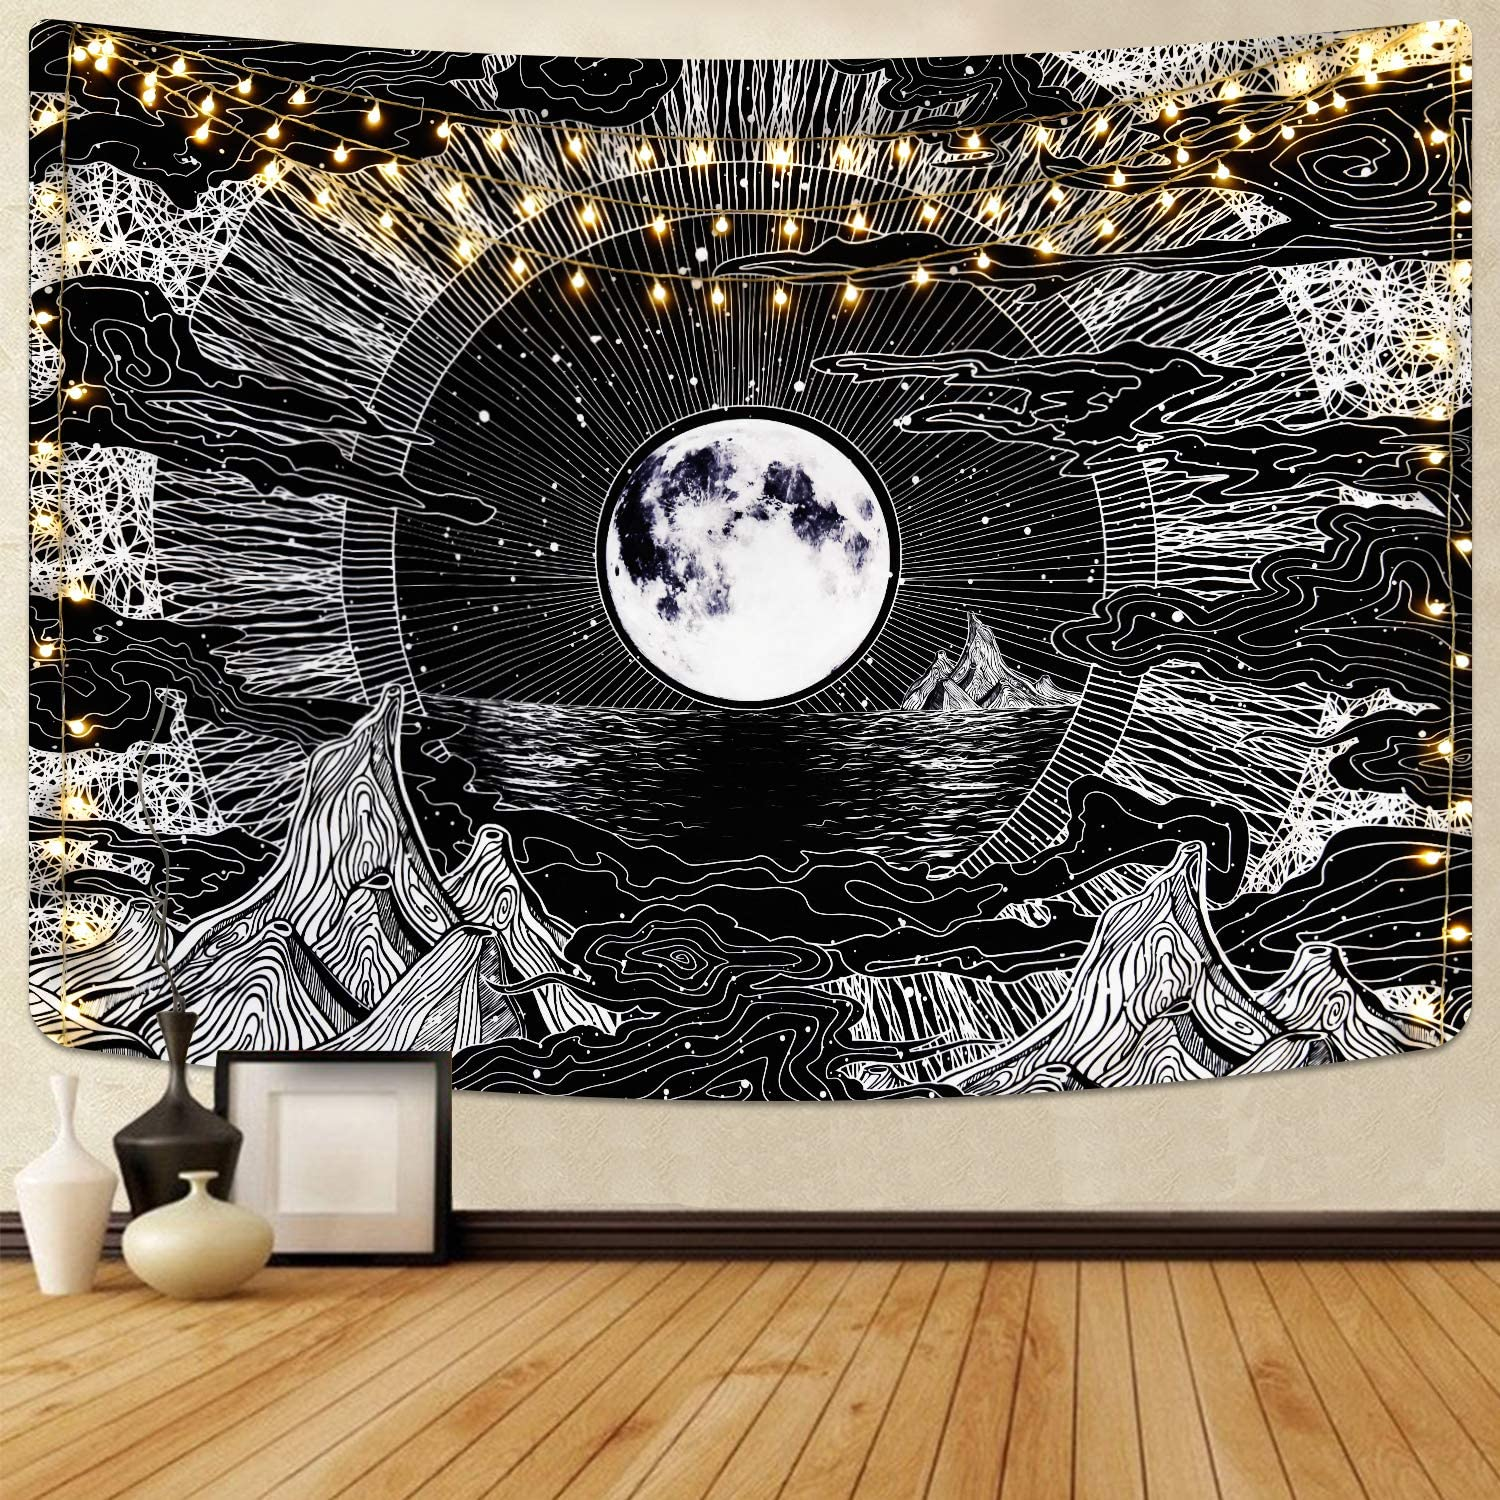 LUCKYYJ Black Tapestry Moon and Star TapestryPsychedelic Mountain Tapestries Clouds Tapestry Home Room decor aesthetic